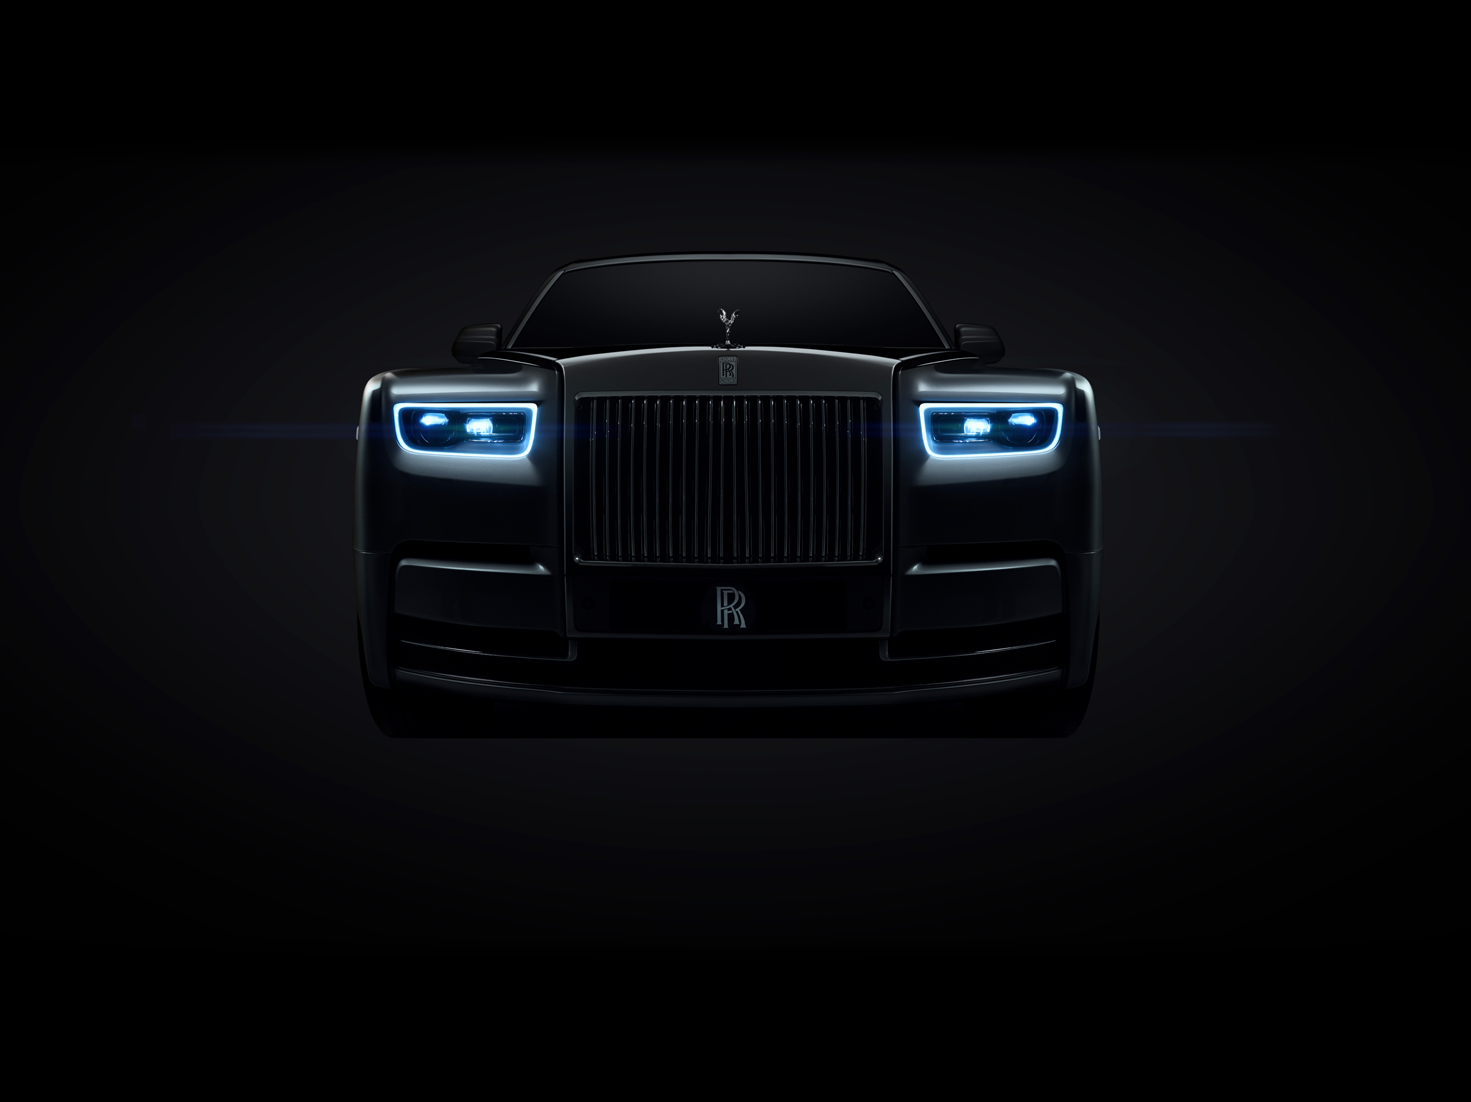 THE NEXT EVOLUTION OF AN ICON - THE ROLLS-ROYCE PHANTOM 8